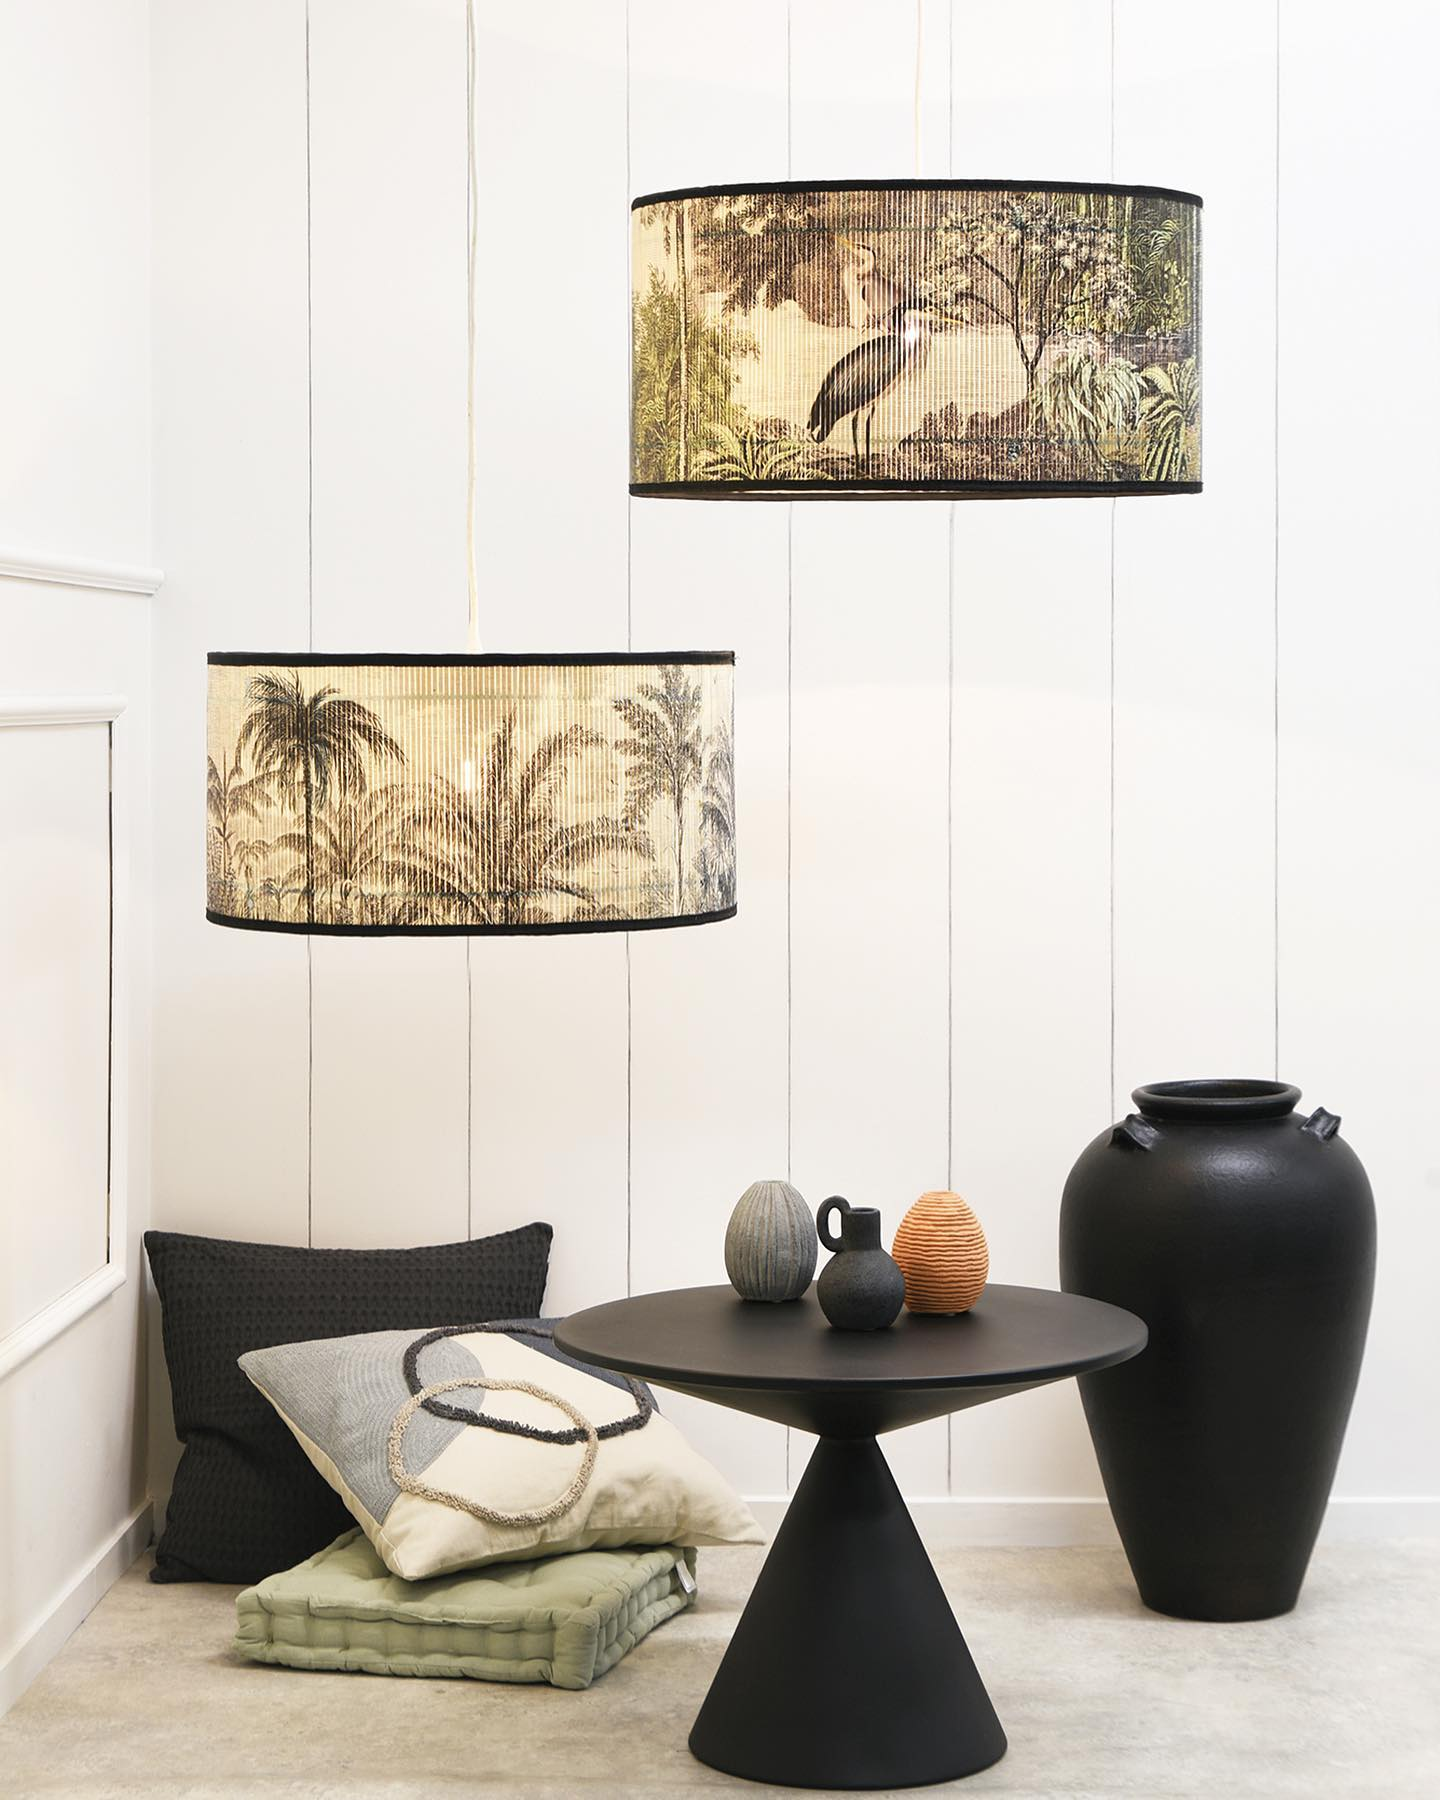 Give your interior a tropical vibe. These printed and slatted bamboo lamp-shades come in 3 different sizes. Metal edges keep the shape. Arriving soon. . . #lamp #lampshades #lighting #bambooshades #tropicalvibe